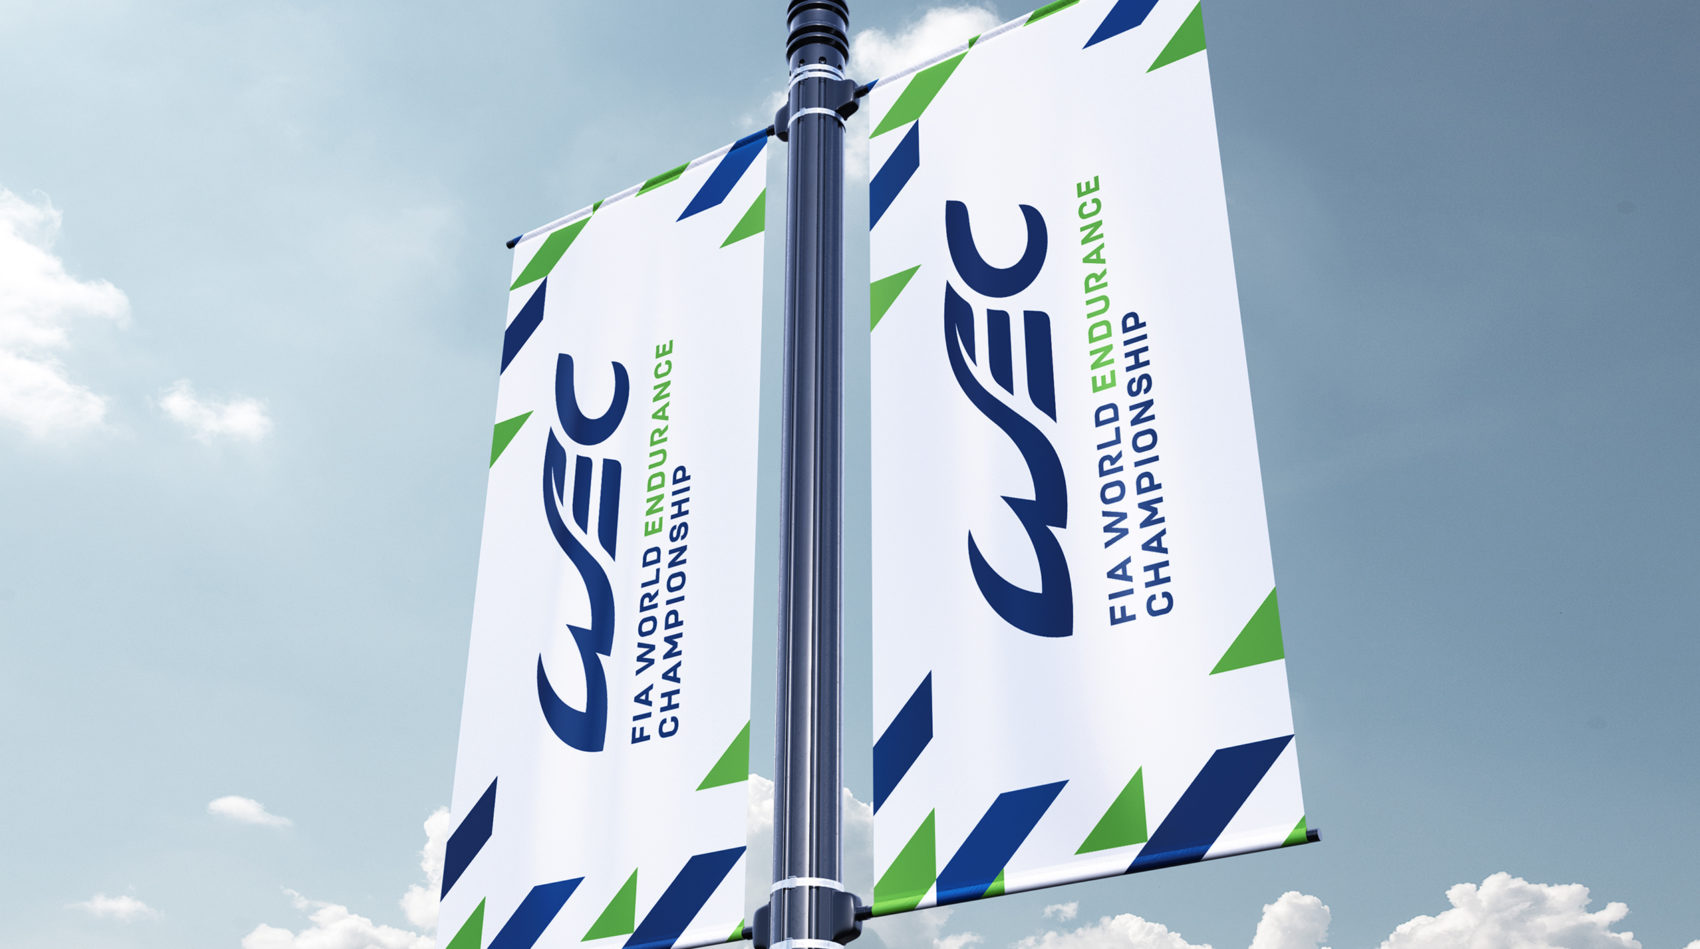 Projet_Project_WEC_FIA_world_endurance_championship_habillage_print